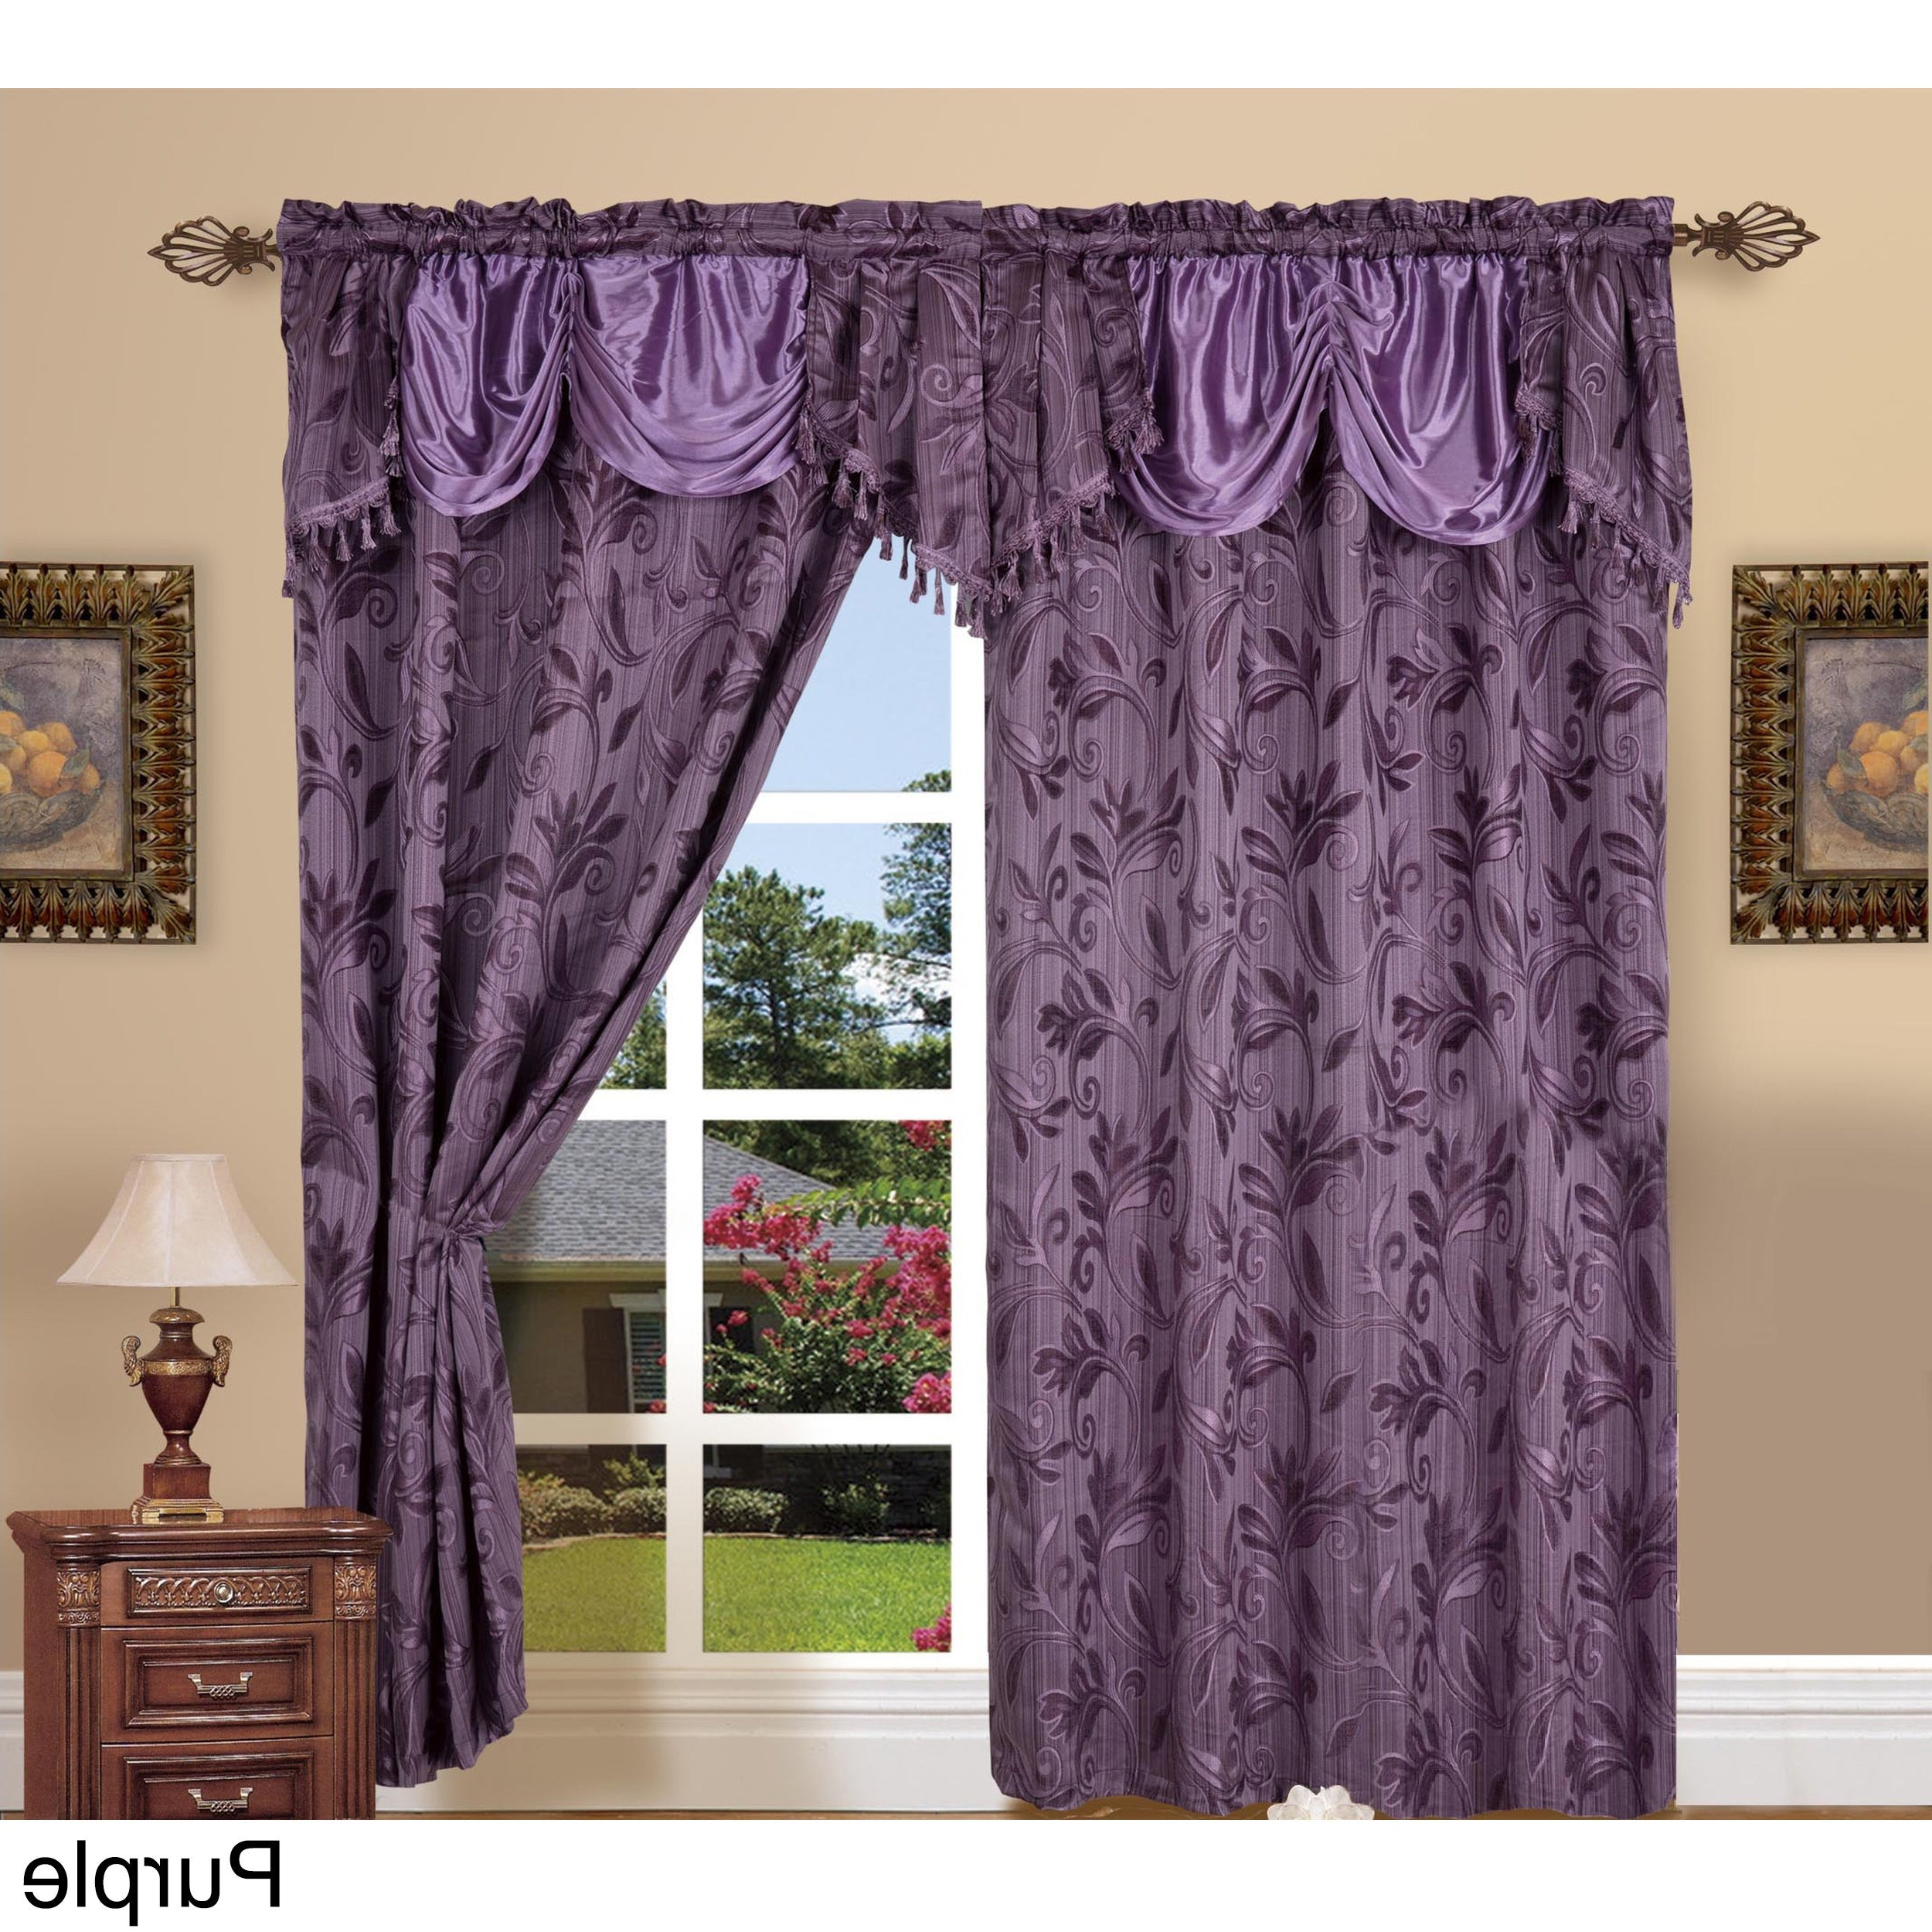 Elegant Comfort Luxury Jacquard Rod Pocket 54 Inch Window Curtain Panel Pair Intended For Favorite Elegant Comfort Window Sheer Curtain Panel Pairs (View 15 of 20)